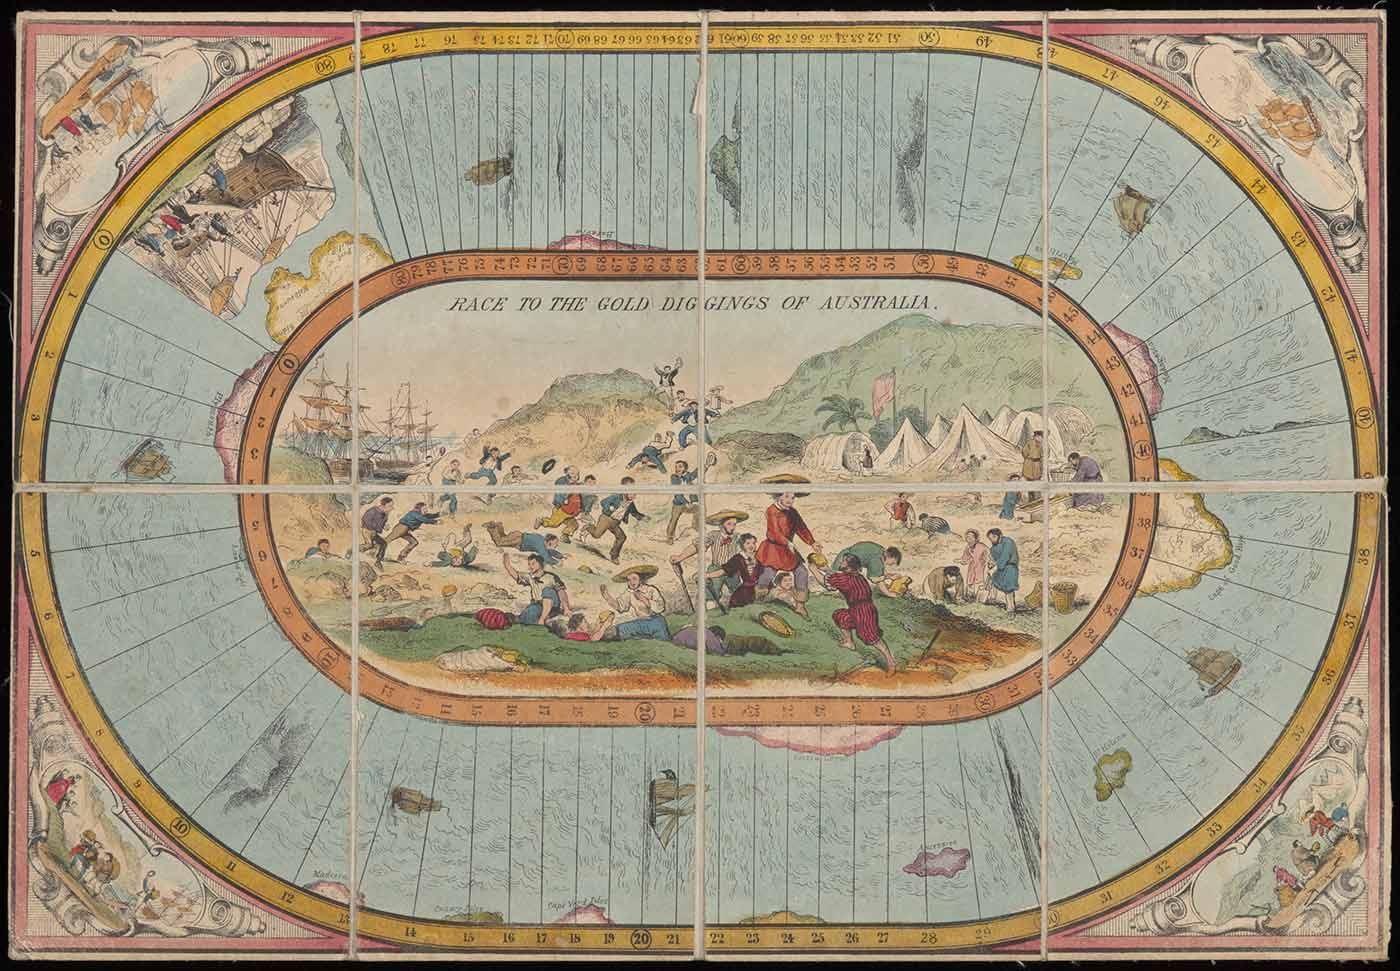 A hand-coloured lithographic playing board made of eight paper sections mounted on linen, with a polygonal twelve-sided teetotum or spinning dice and three small painted metal playing pieces in the shape of tall ships. - click to view larger image